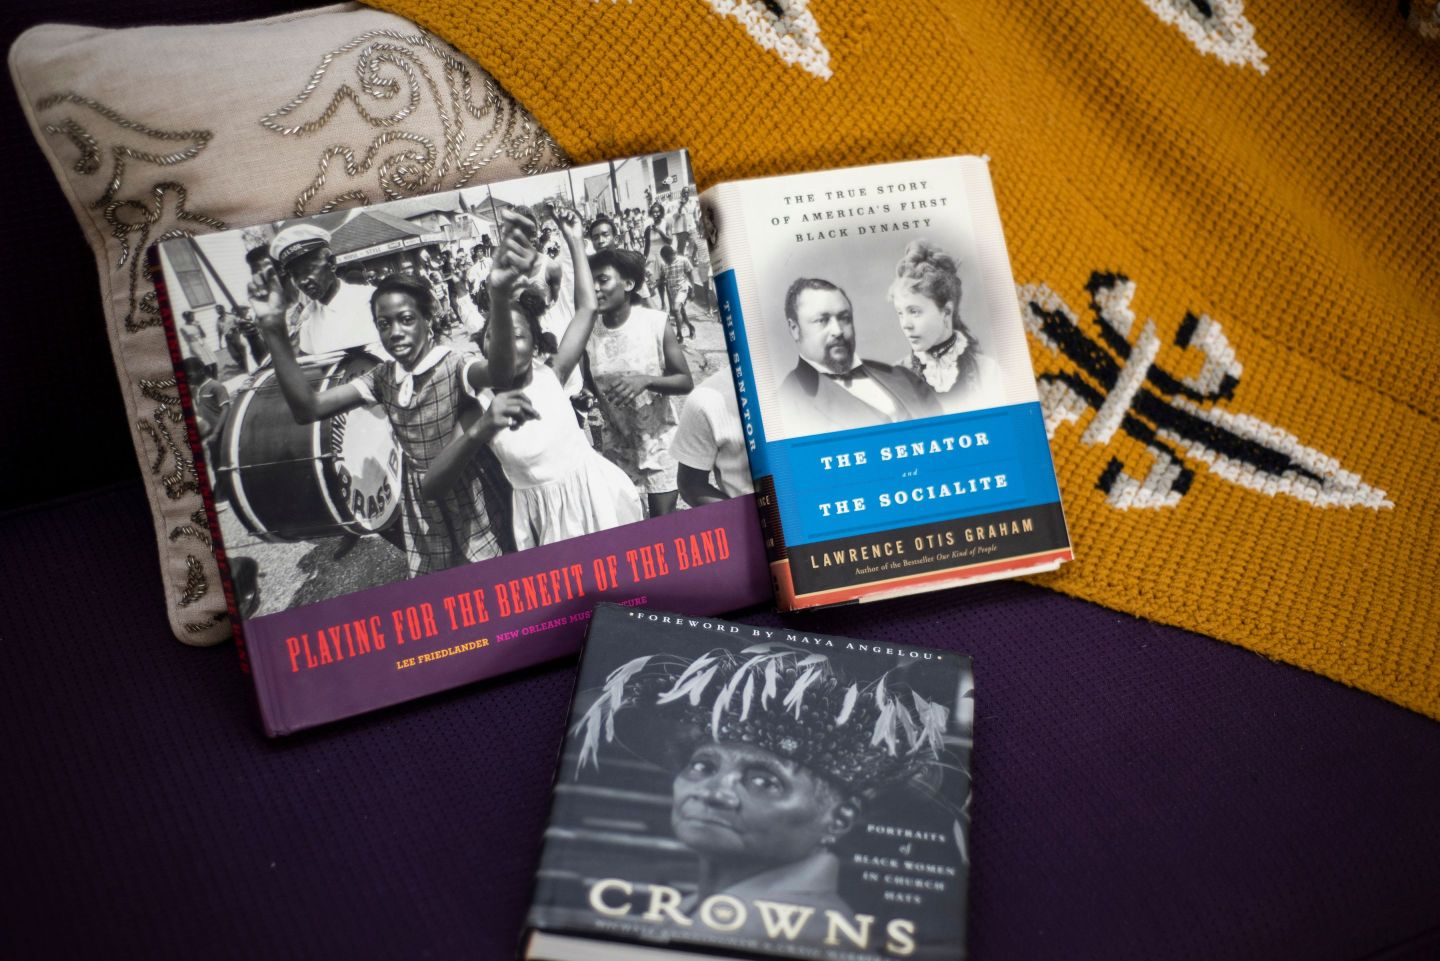 Nominate a Site for the Louisiana Civil Rights Trail